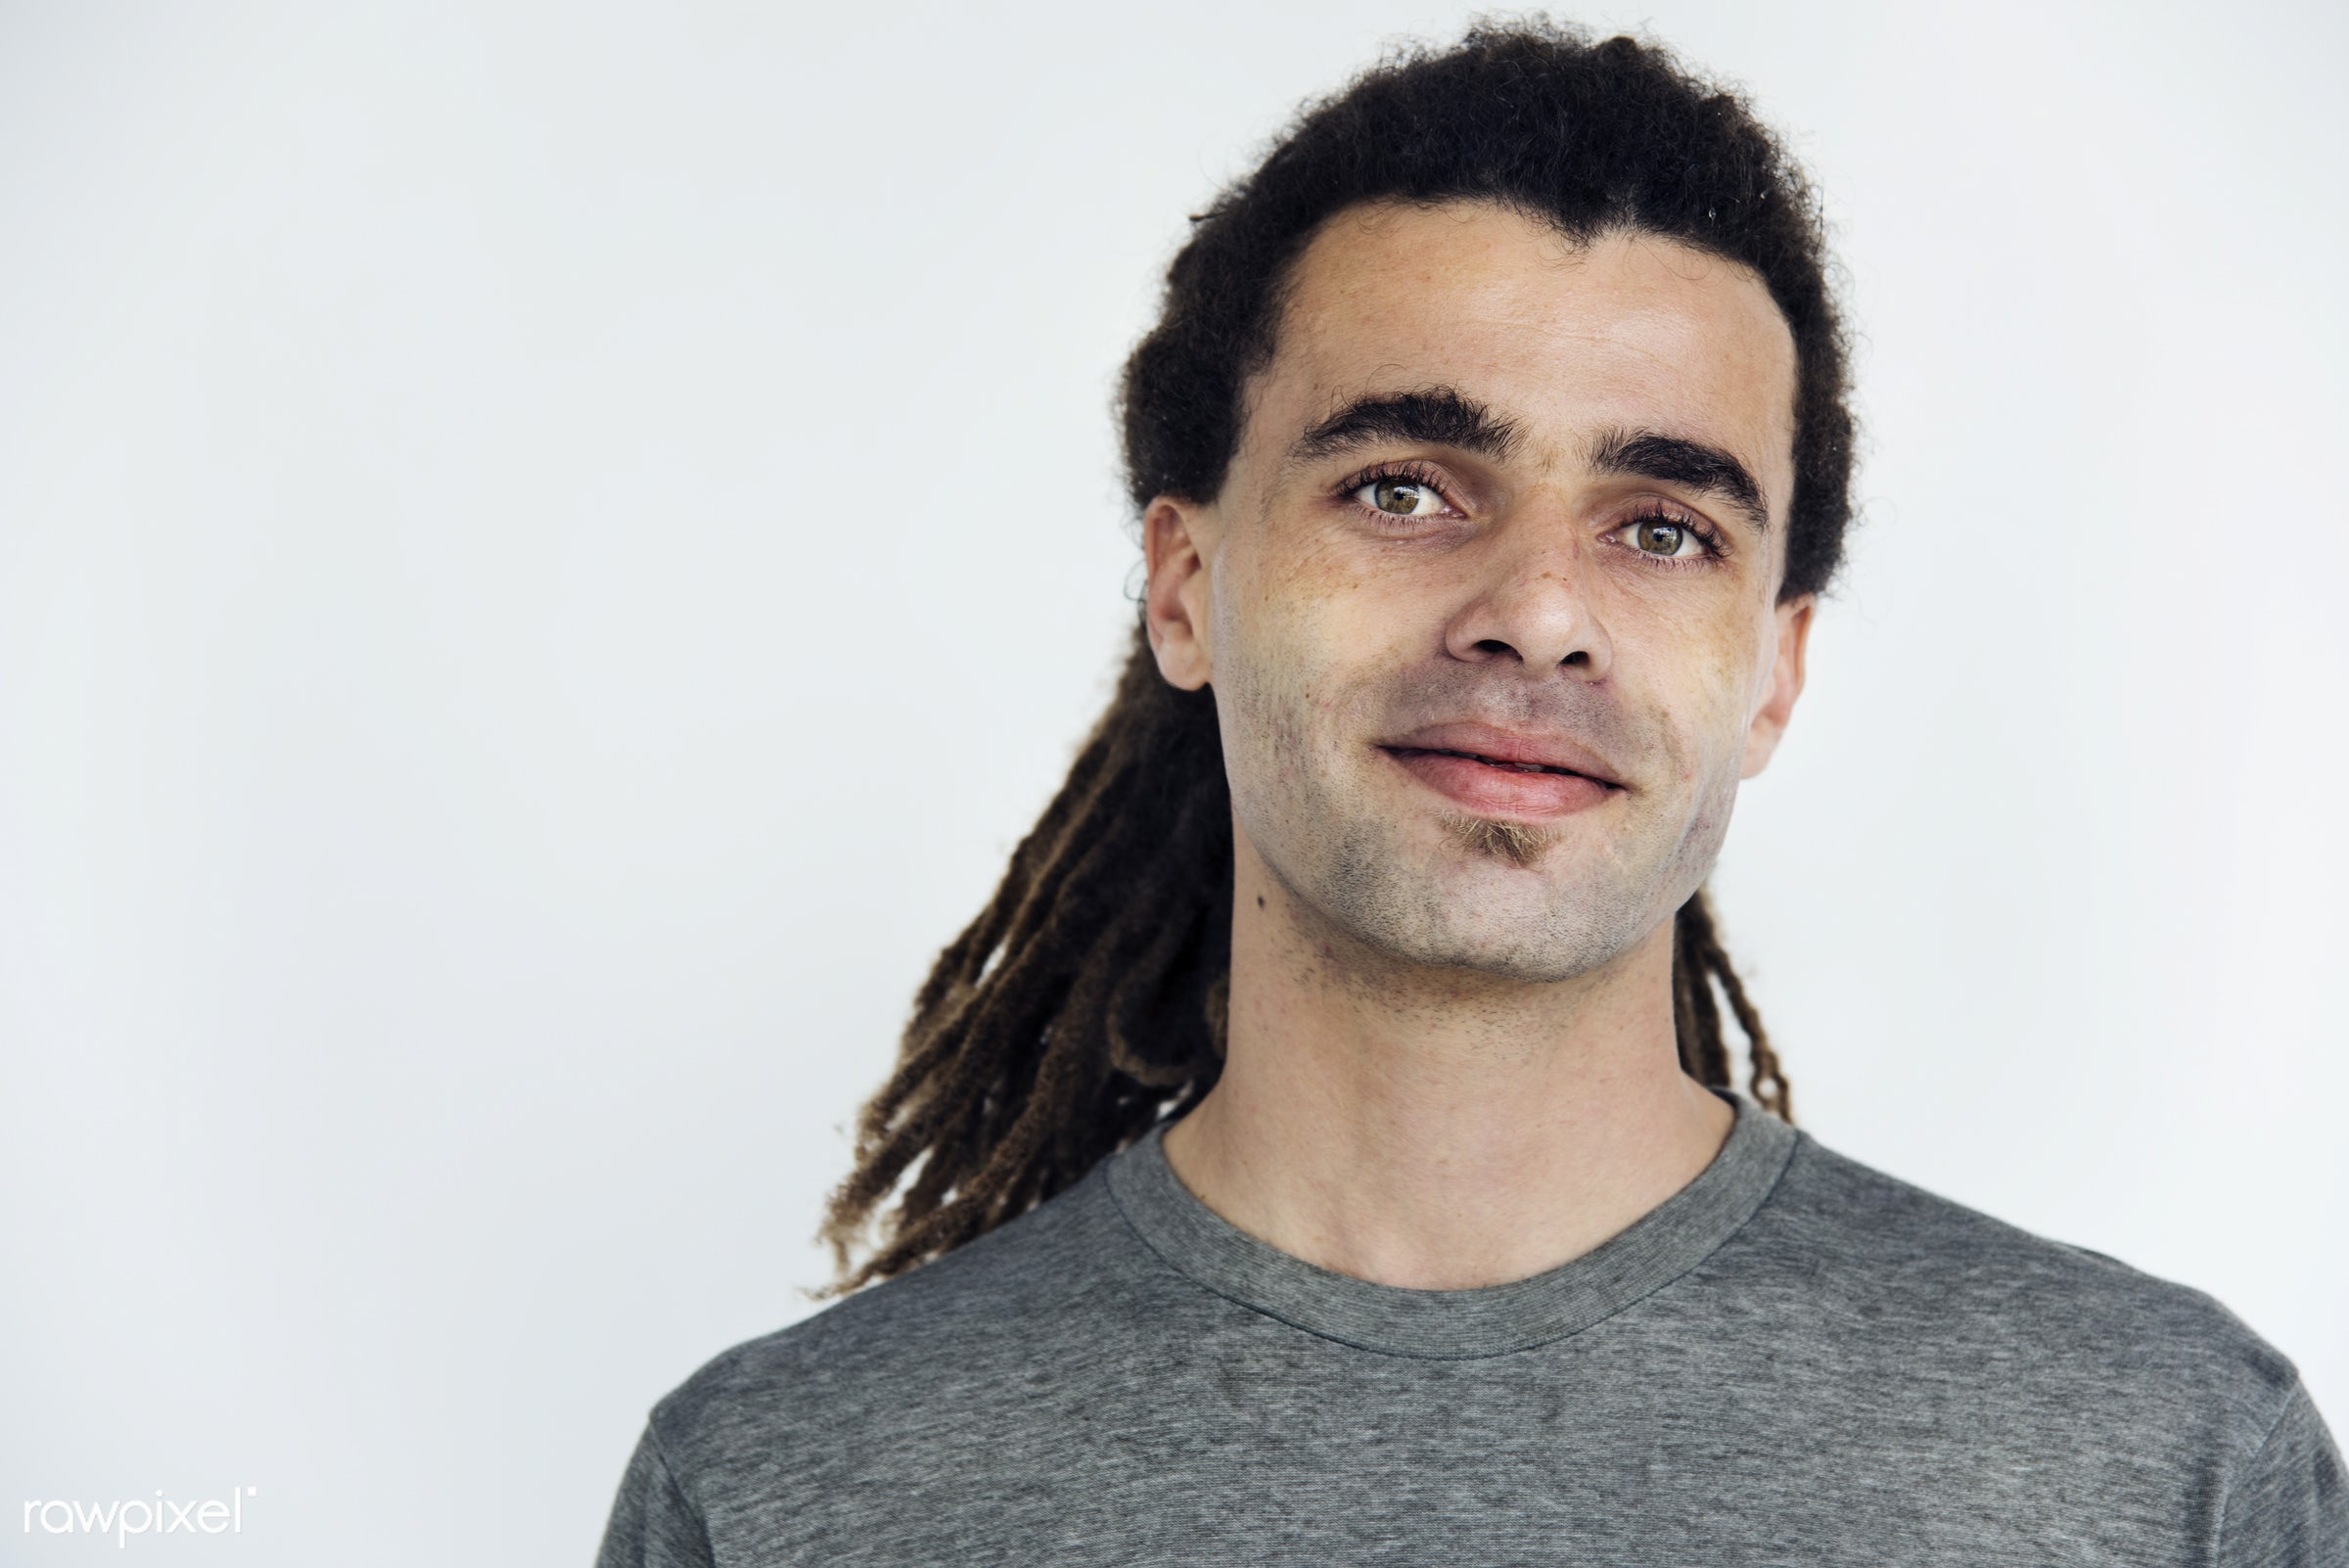 expression, person, normal, glancing, caucasian, staring, daydreaming, lifestyle, gentleman, isolated, dreadlocks, white,...